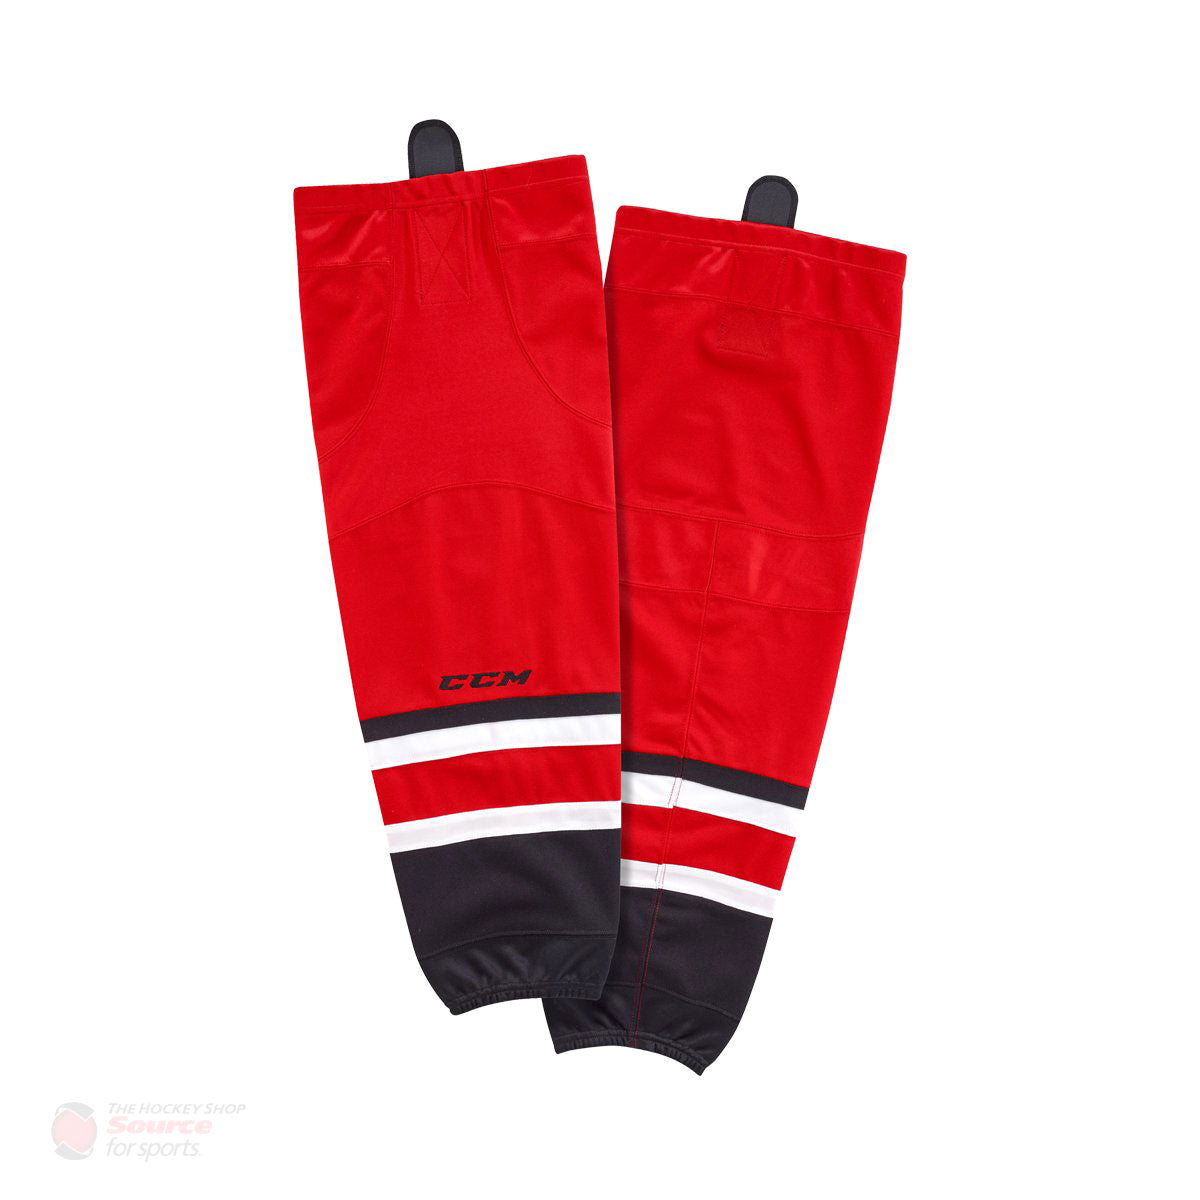 Carolina Hurricanes CCM Quicklite 8000 Hockey Socks